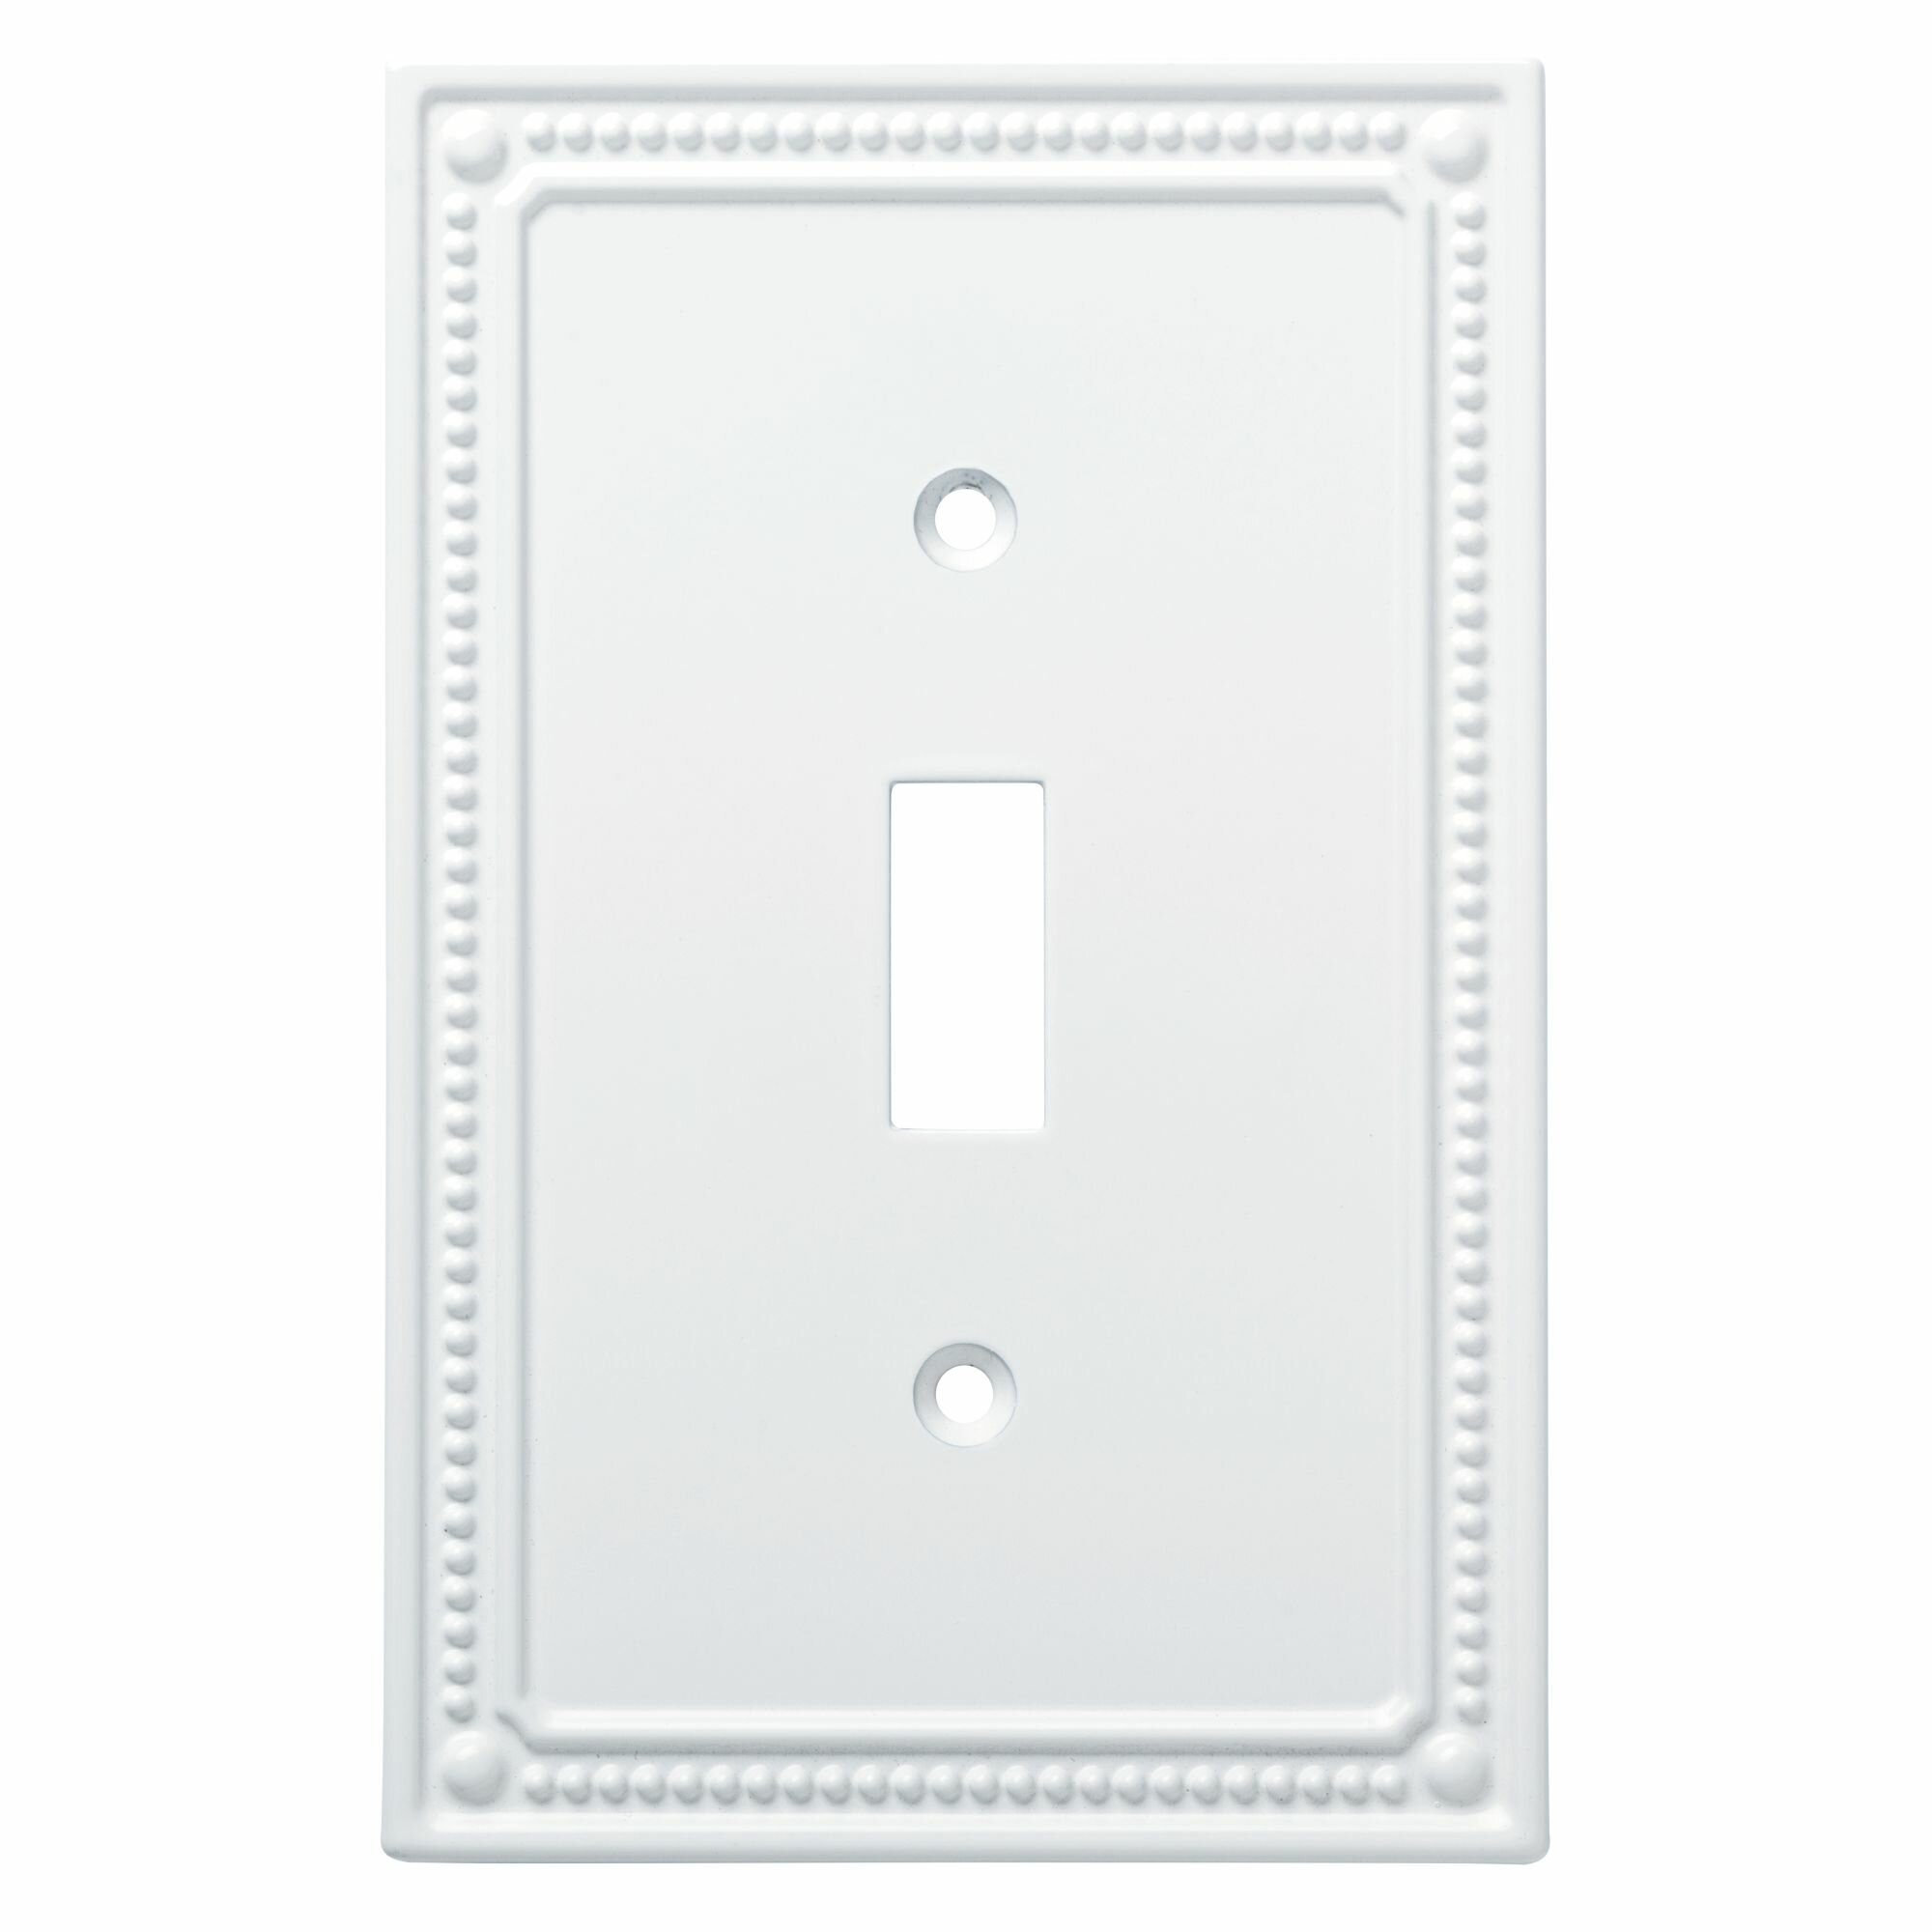 Franklin Brass Classic Beaded 1 Gang Toggle Light Switch Wall Plate Reviews Wayfair